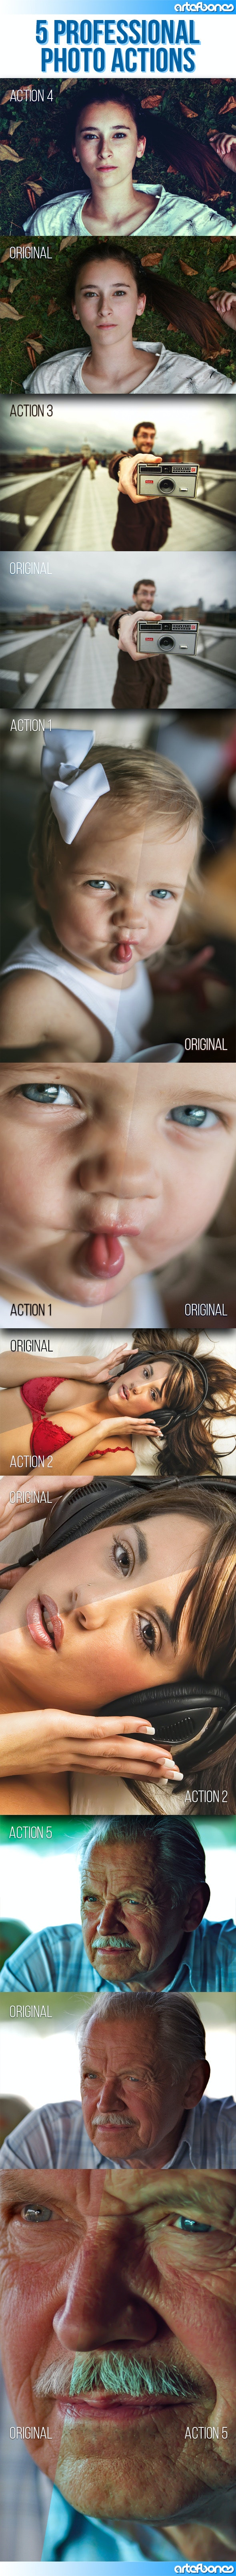 5 Professional Actions Vol.1 - Photo Effects Actions